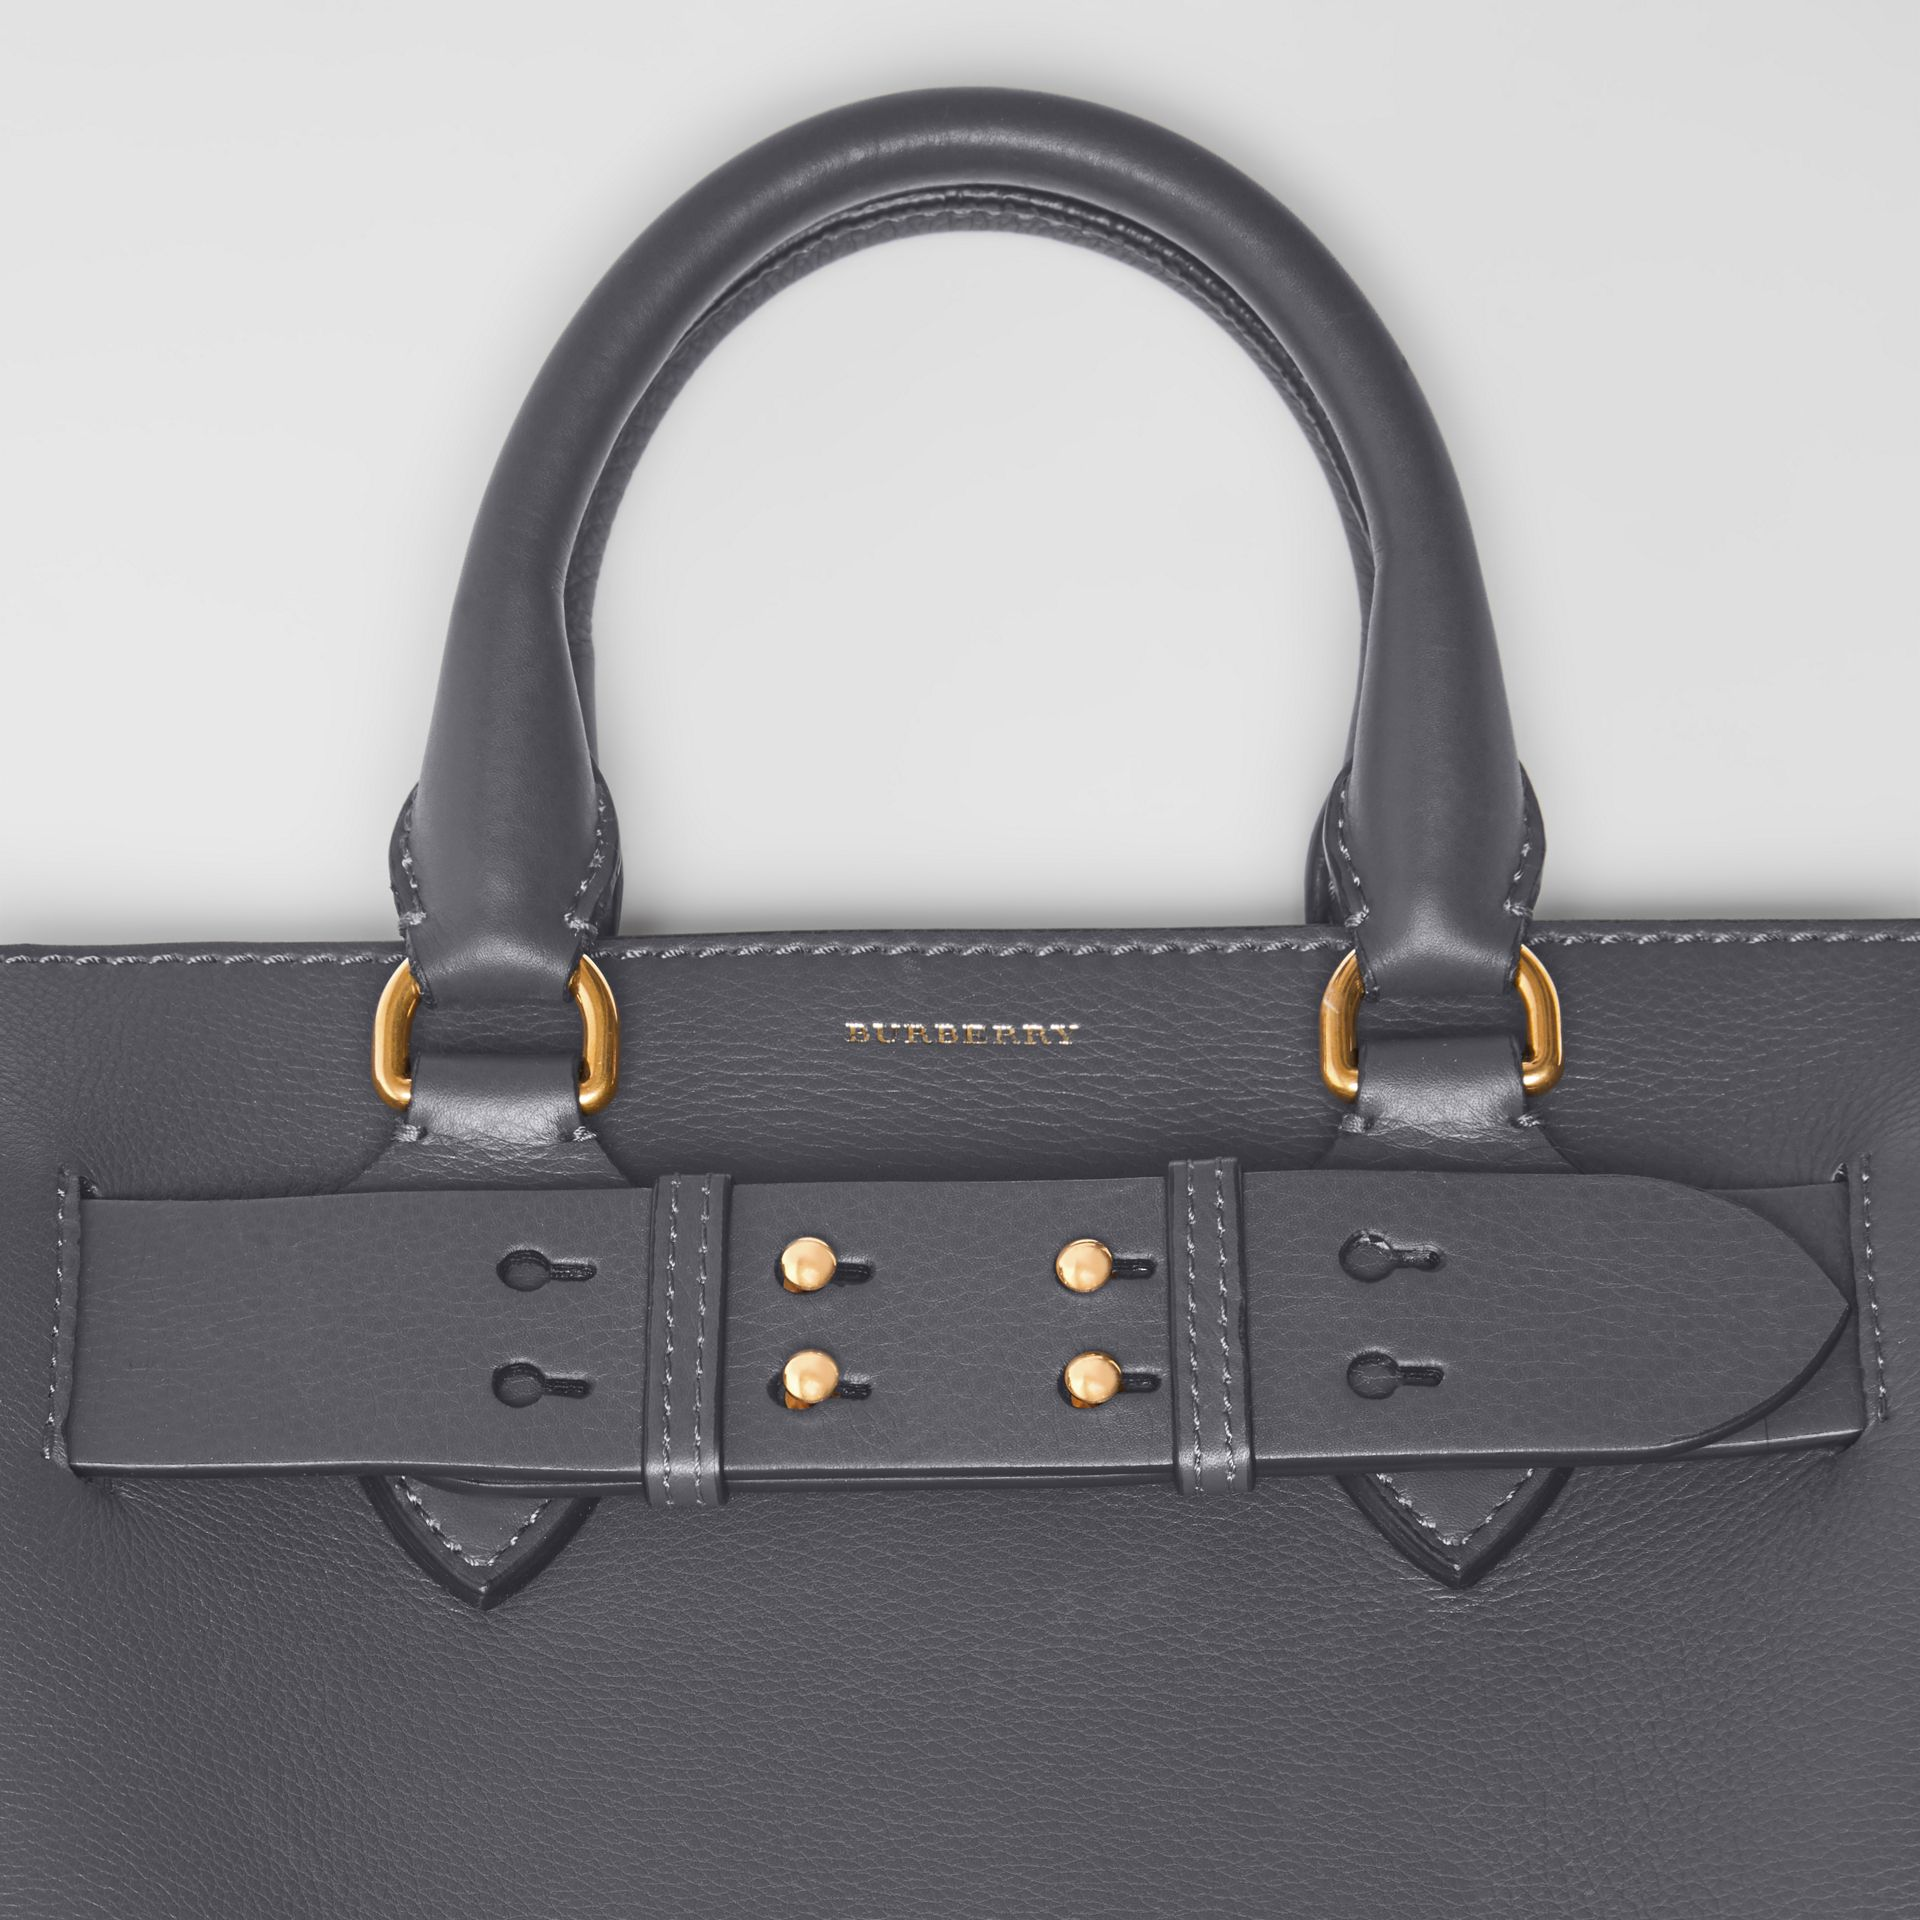 Petit sac The Belt en cuir (Gris Anthracite) - Femme | Burberry Canada - photo de la galerie 1